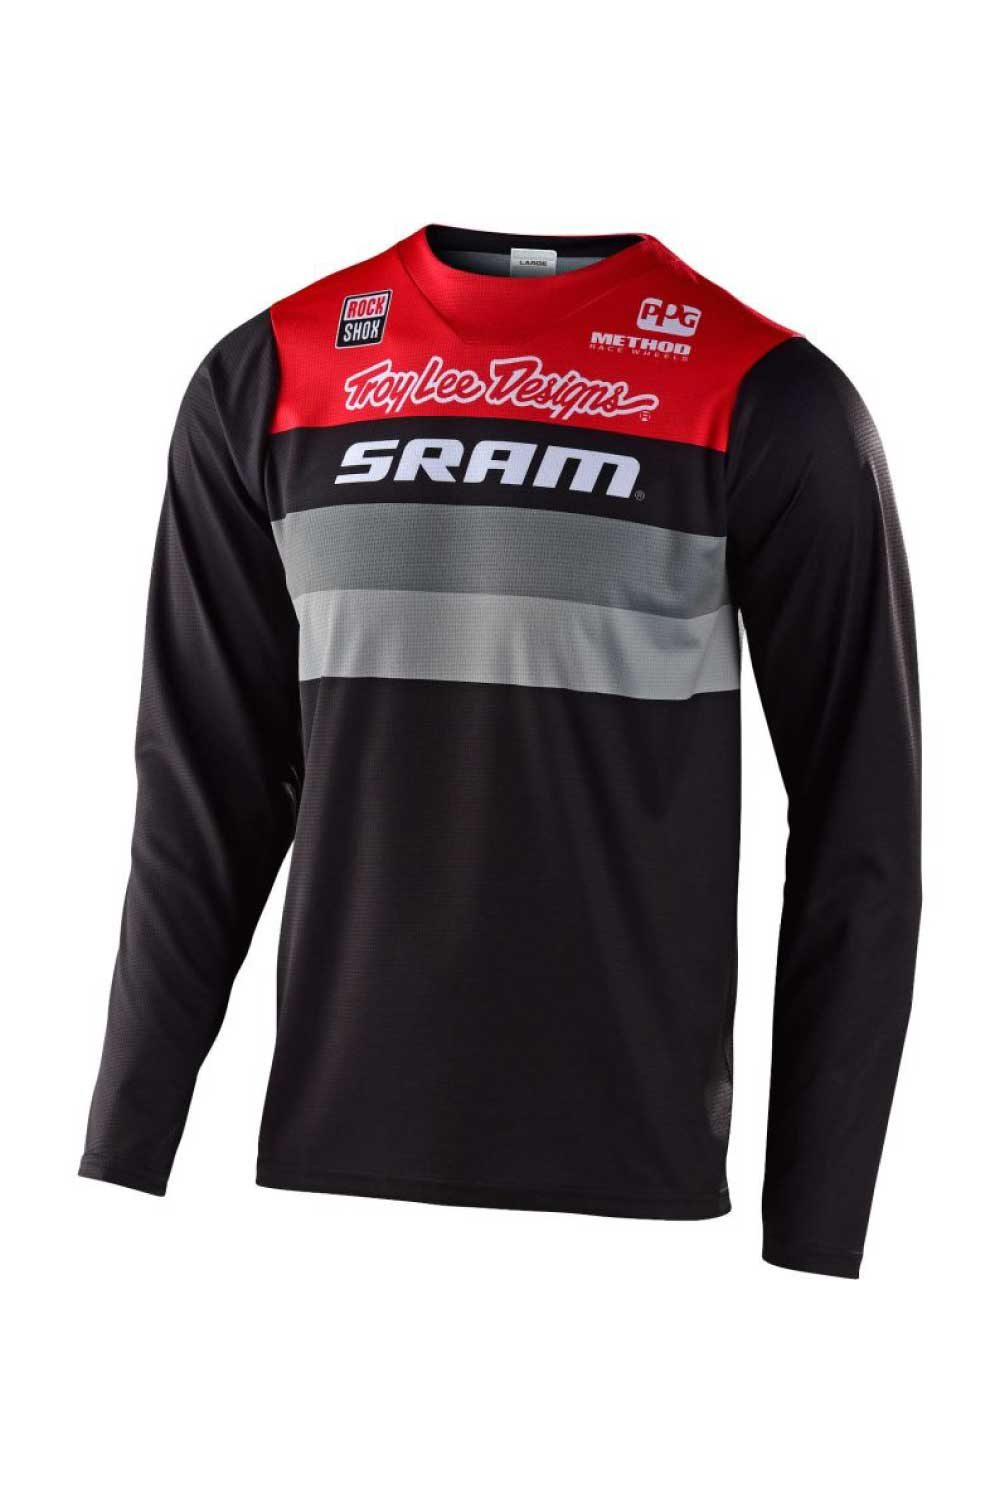 CONTINENTAL SRAM BLACK / RED